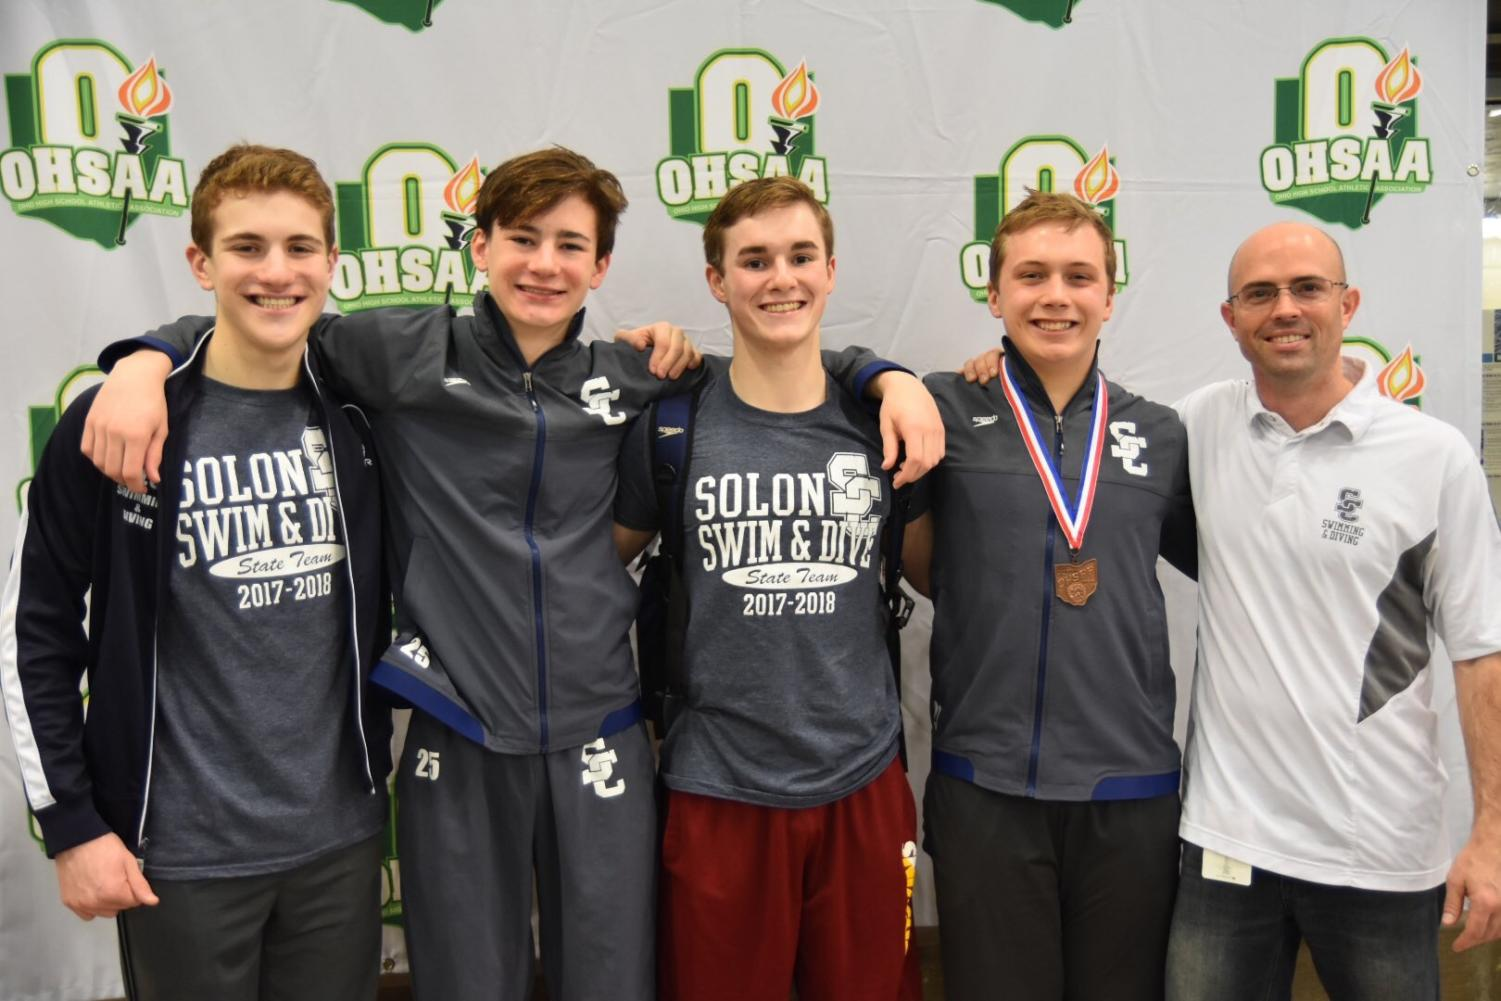 All four boys from SHS finished in the top 16 at states.